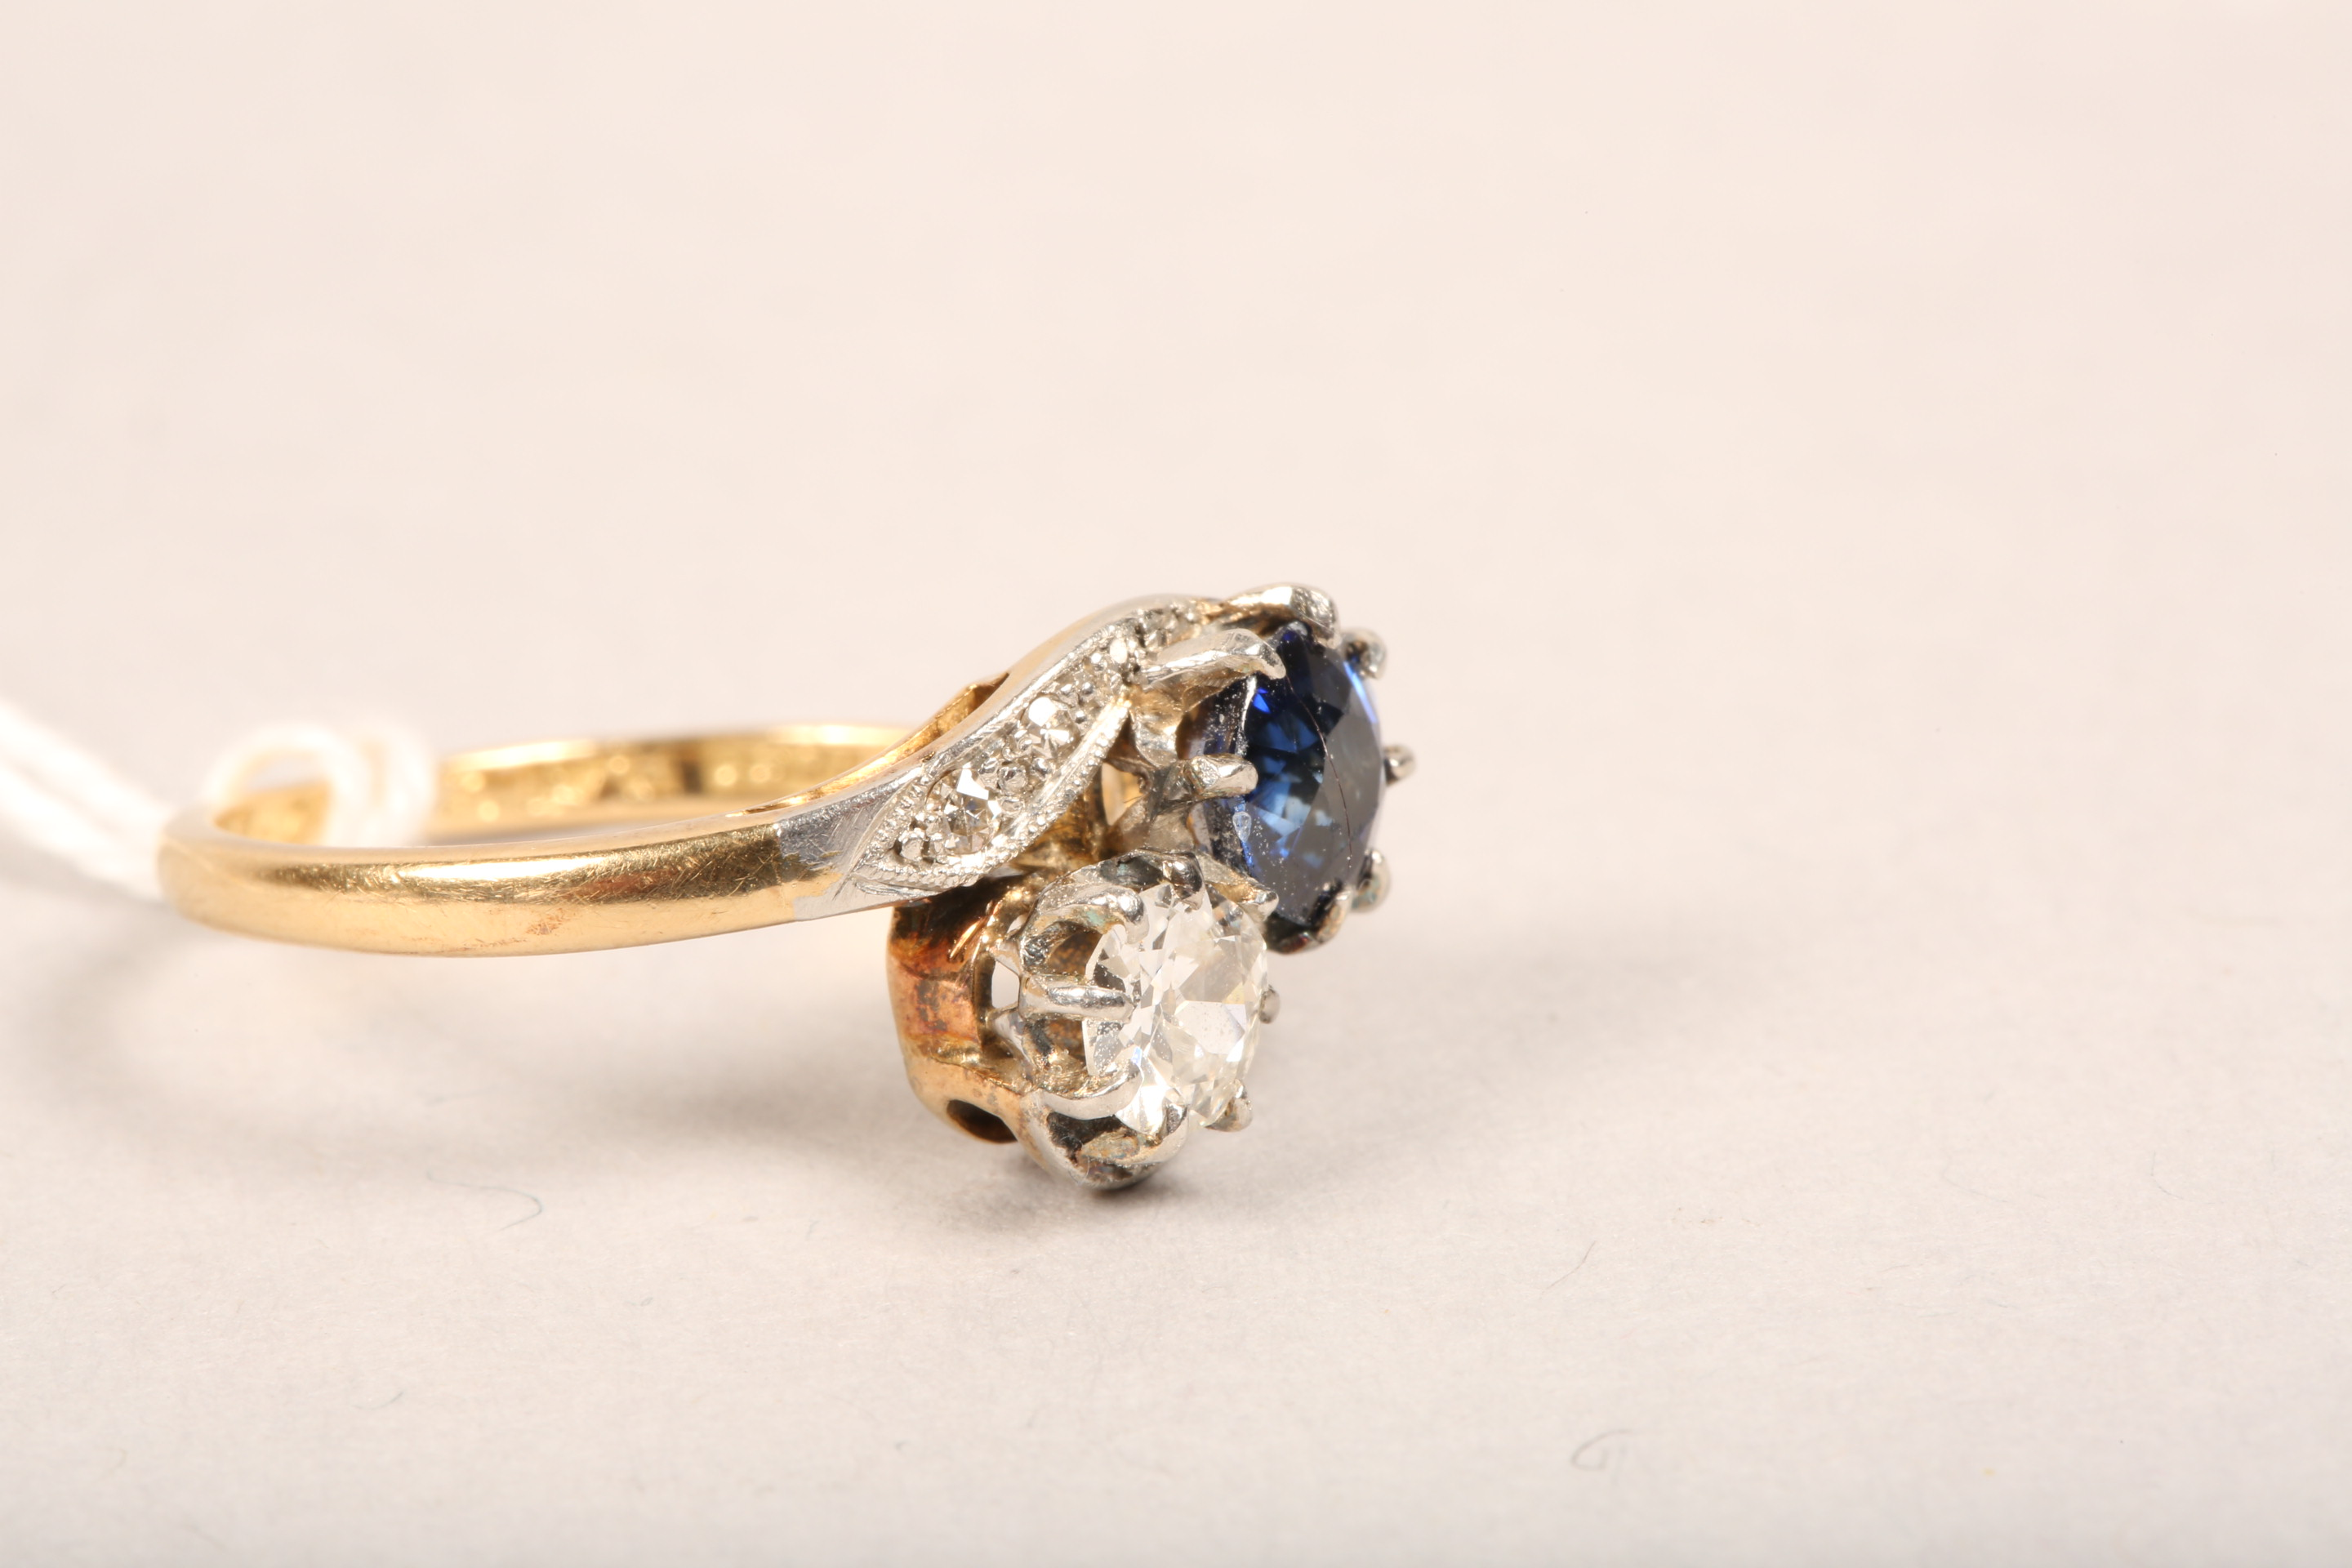 Ladies 18 carat gold diamond and sapphire ring, 0.33 diamond and 0.5 sapphire in twist setting, - Image 8 of 8